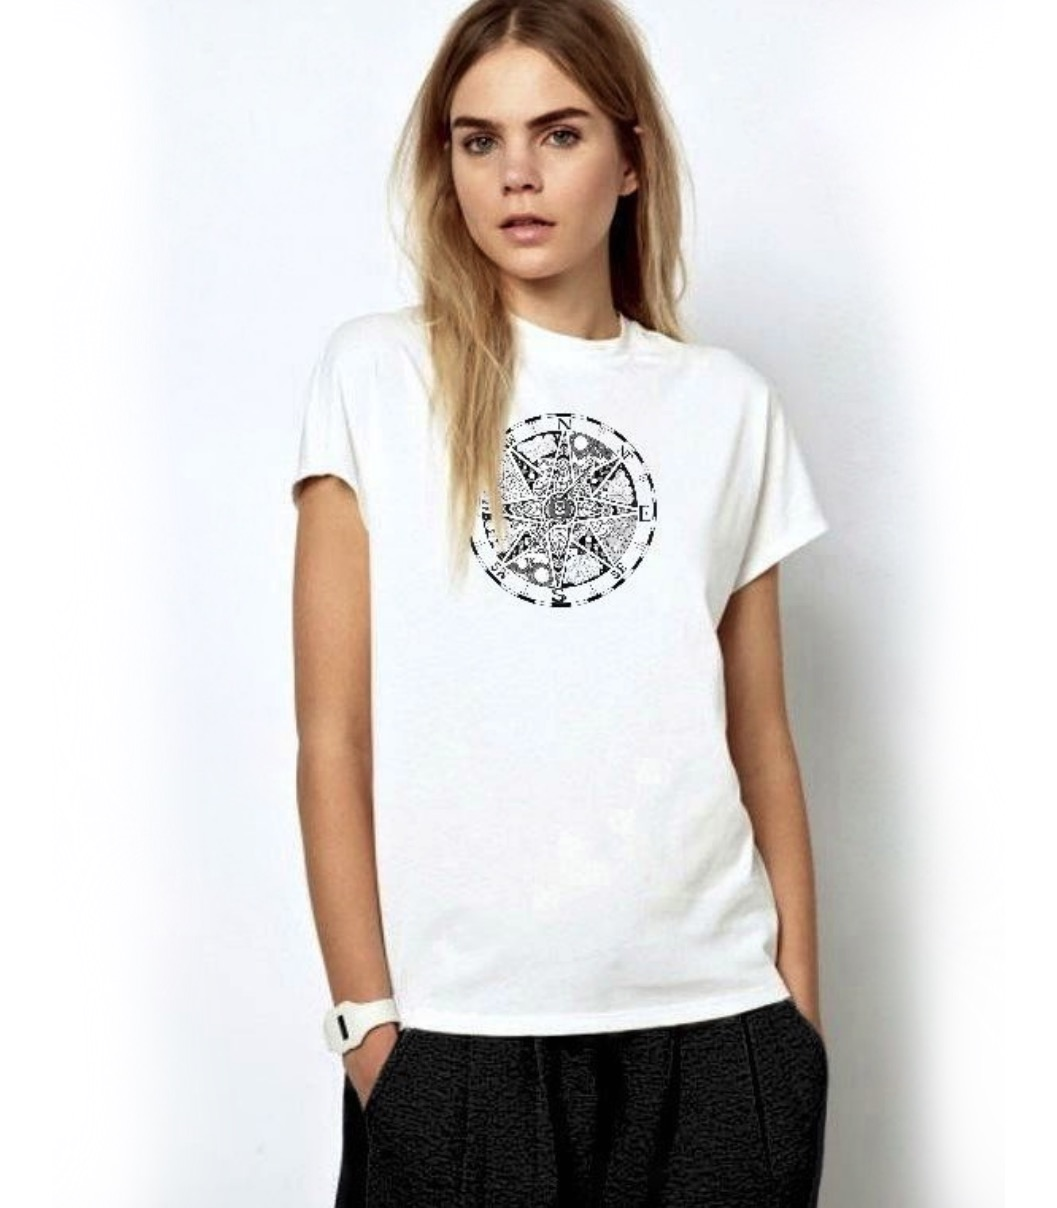 15-Off-White-Women-s-Black-Embroidered-T-Shirt-1 copy 40.jpg